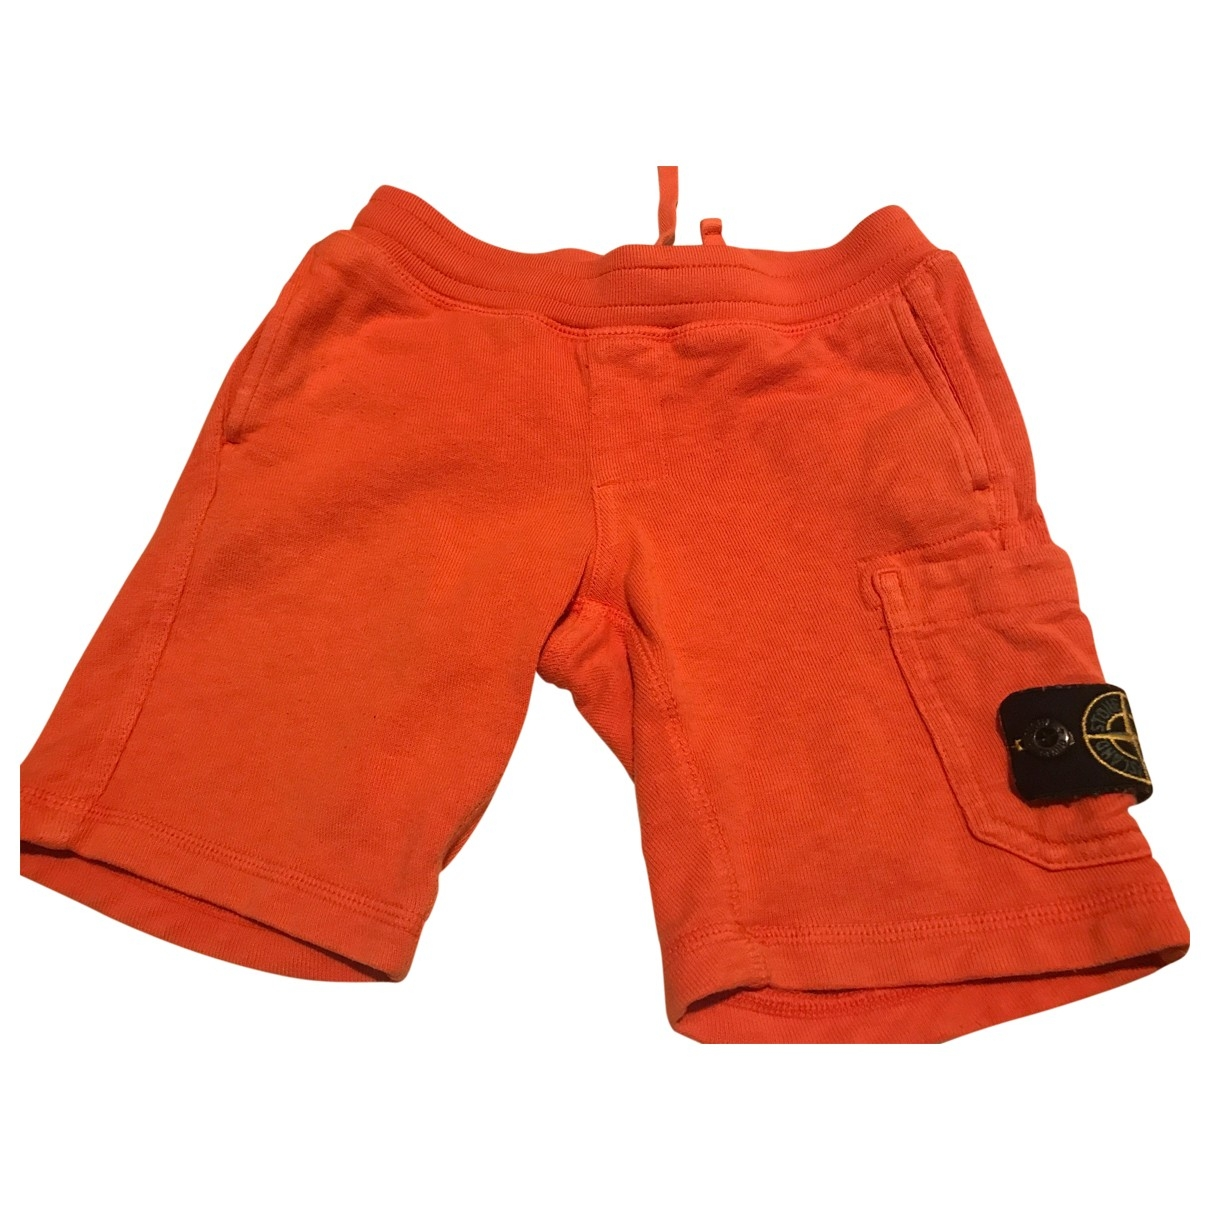 Stone Island \N Orange Cotton Shorts for Kids 4 years - up to 102cm FR